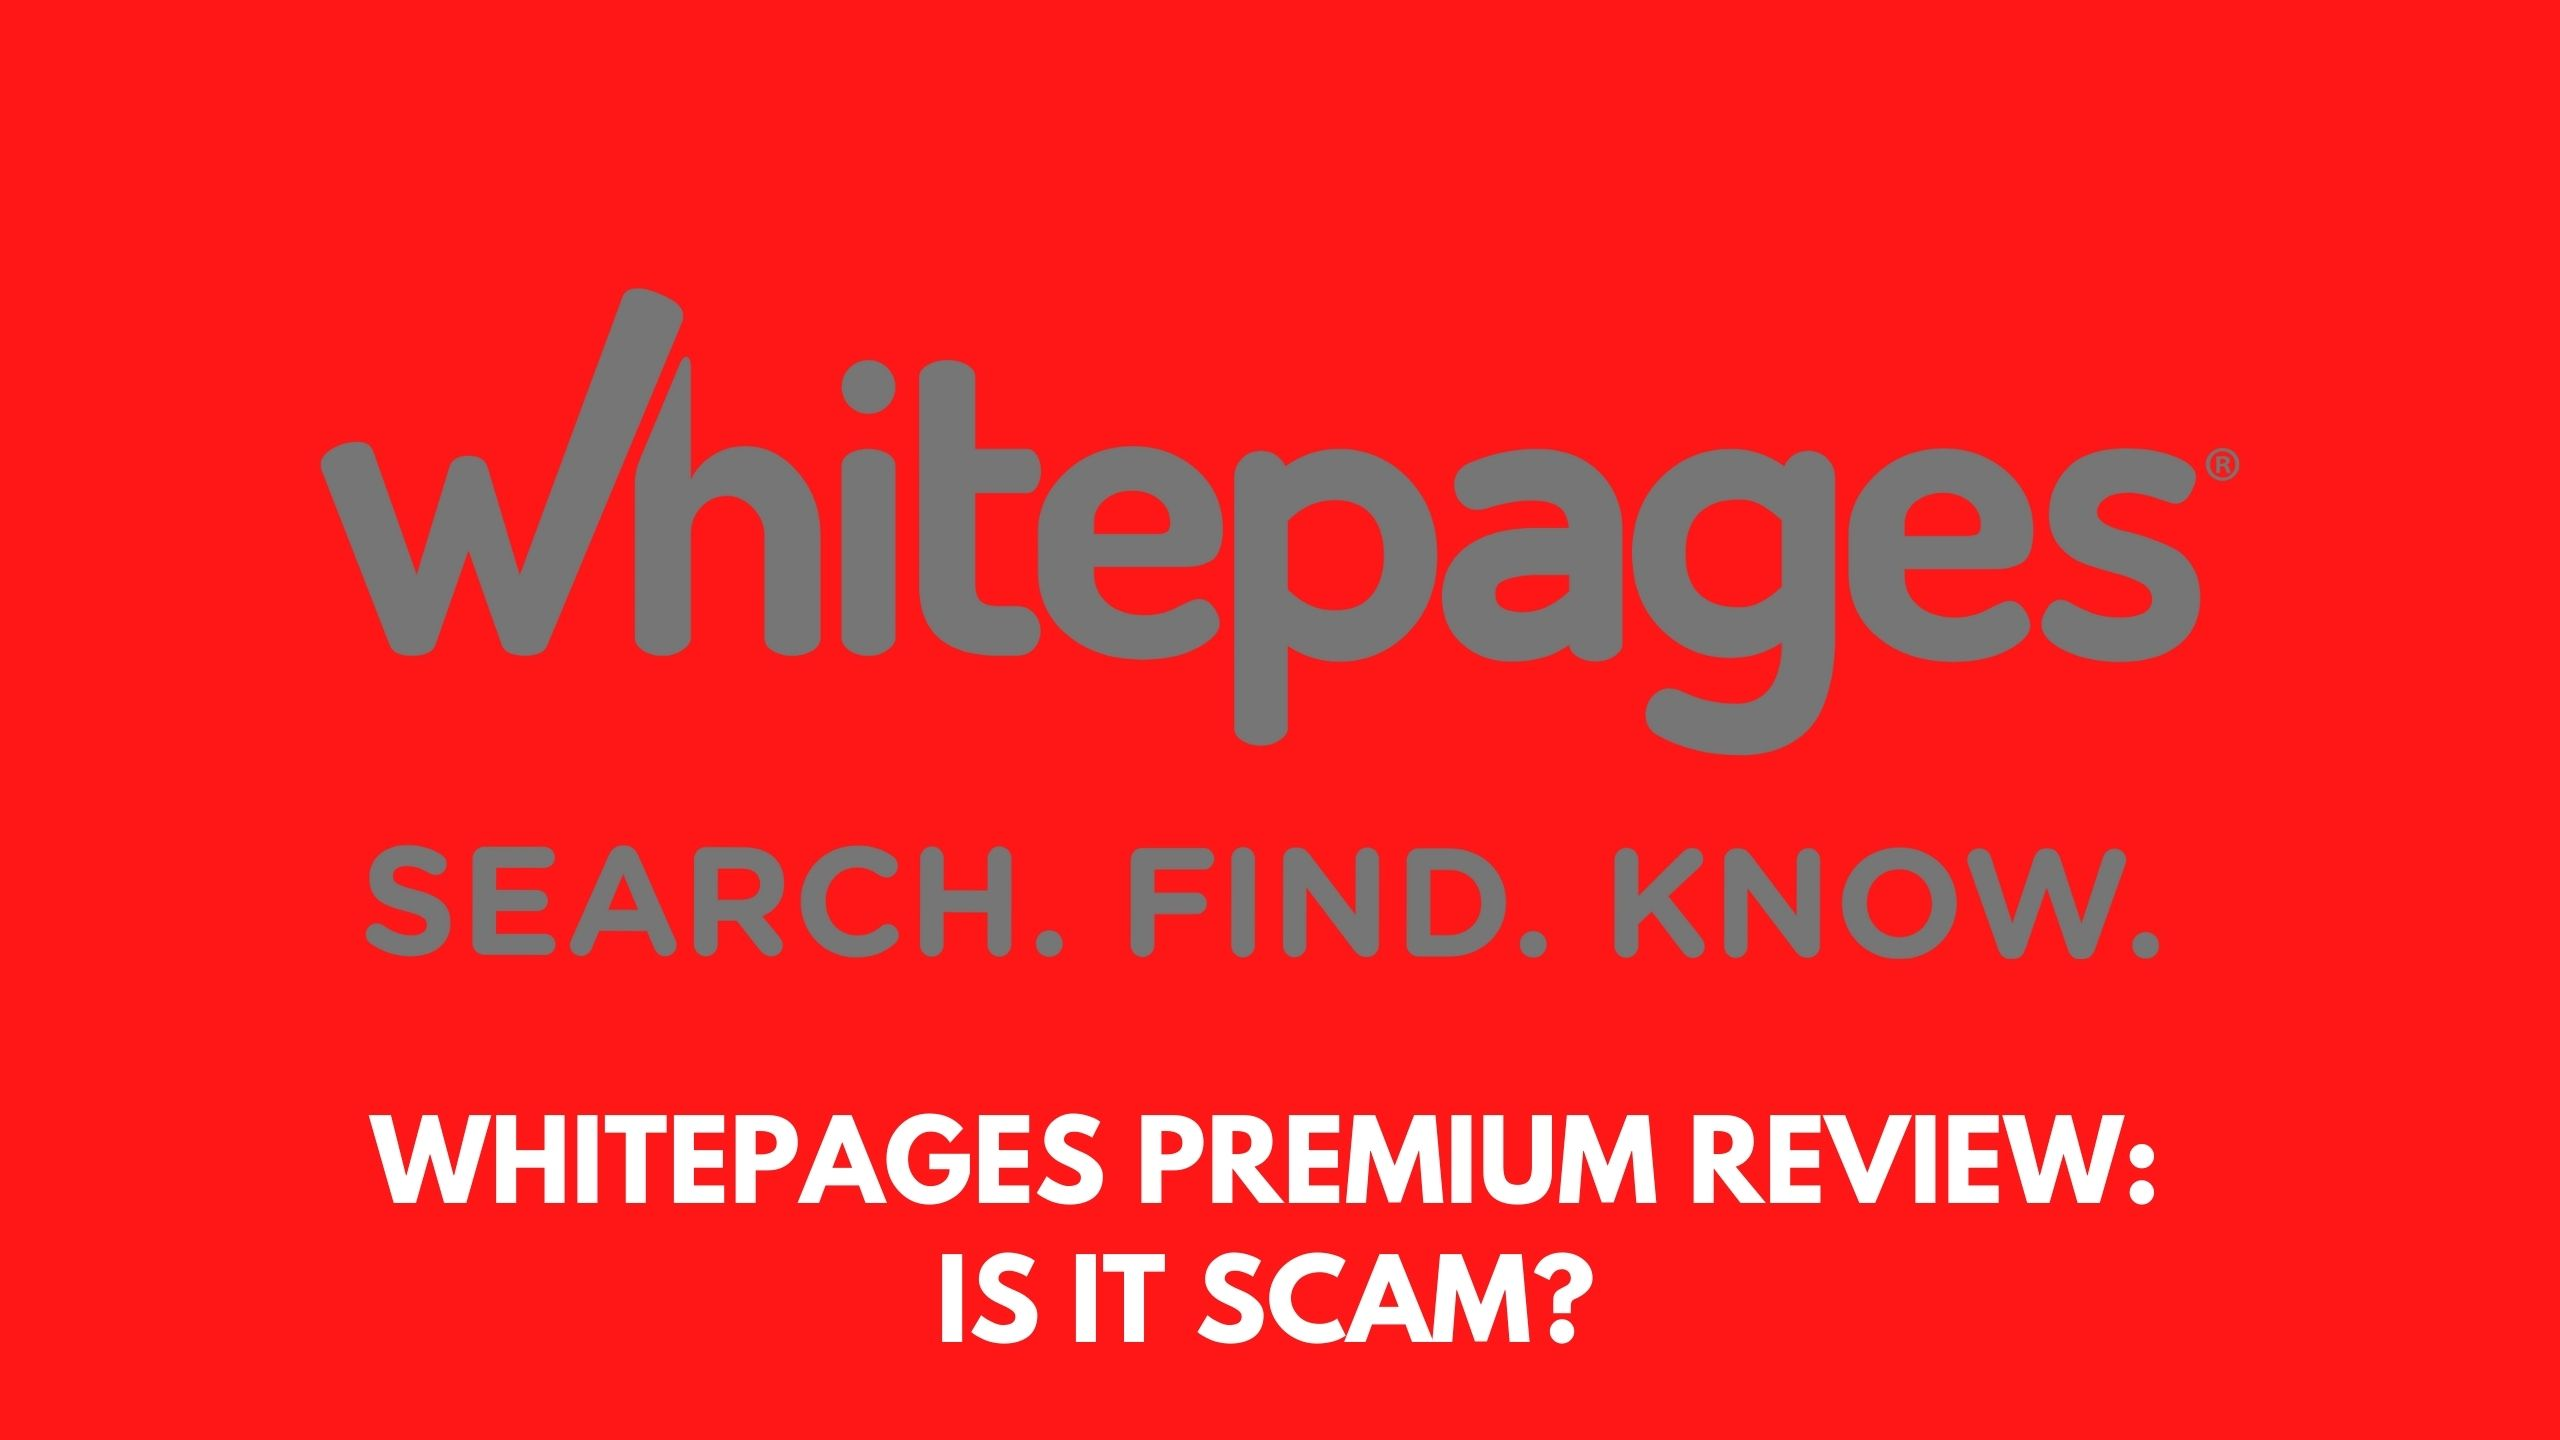 Whitepages Premium Review